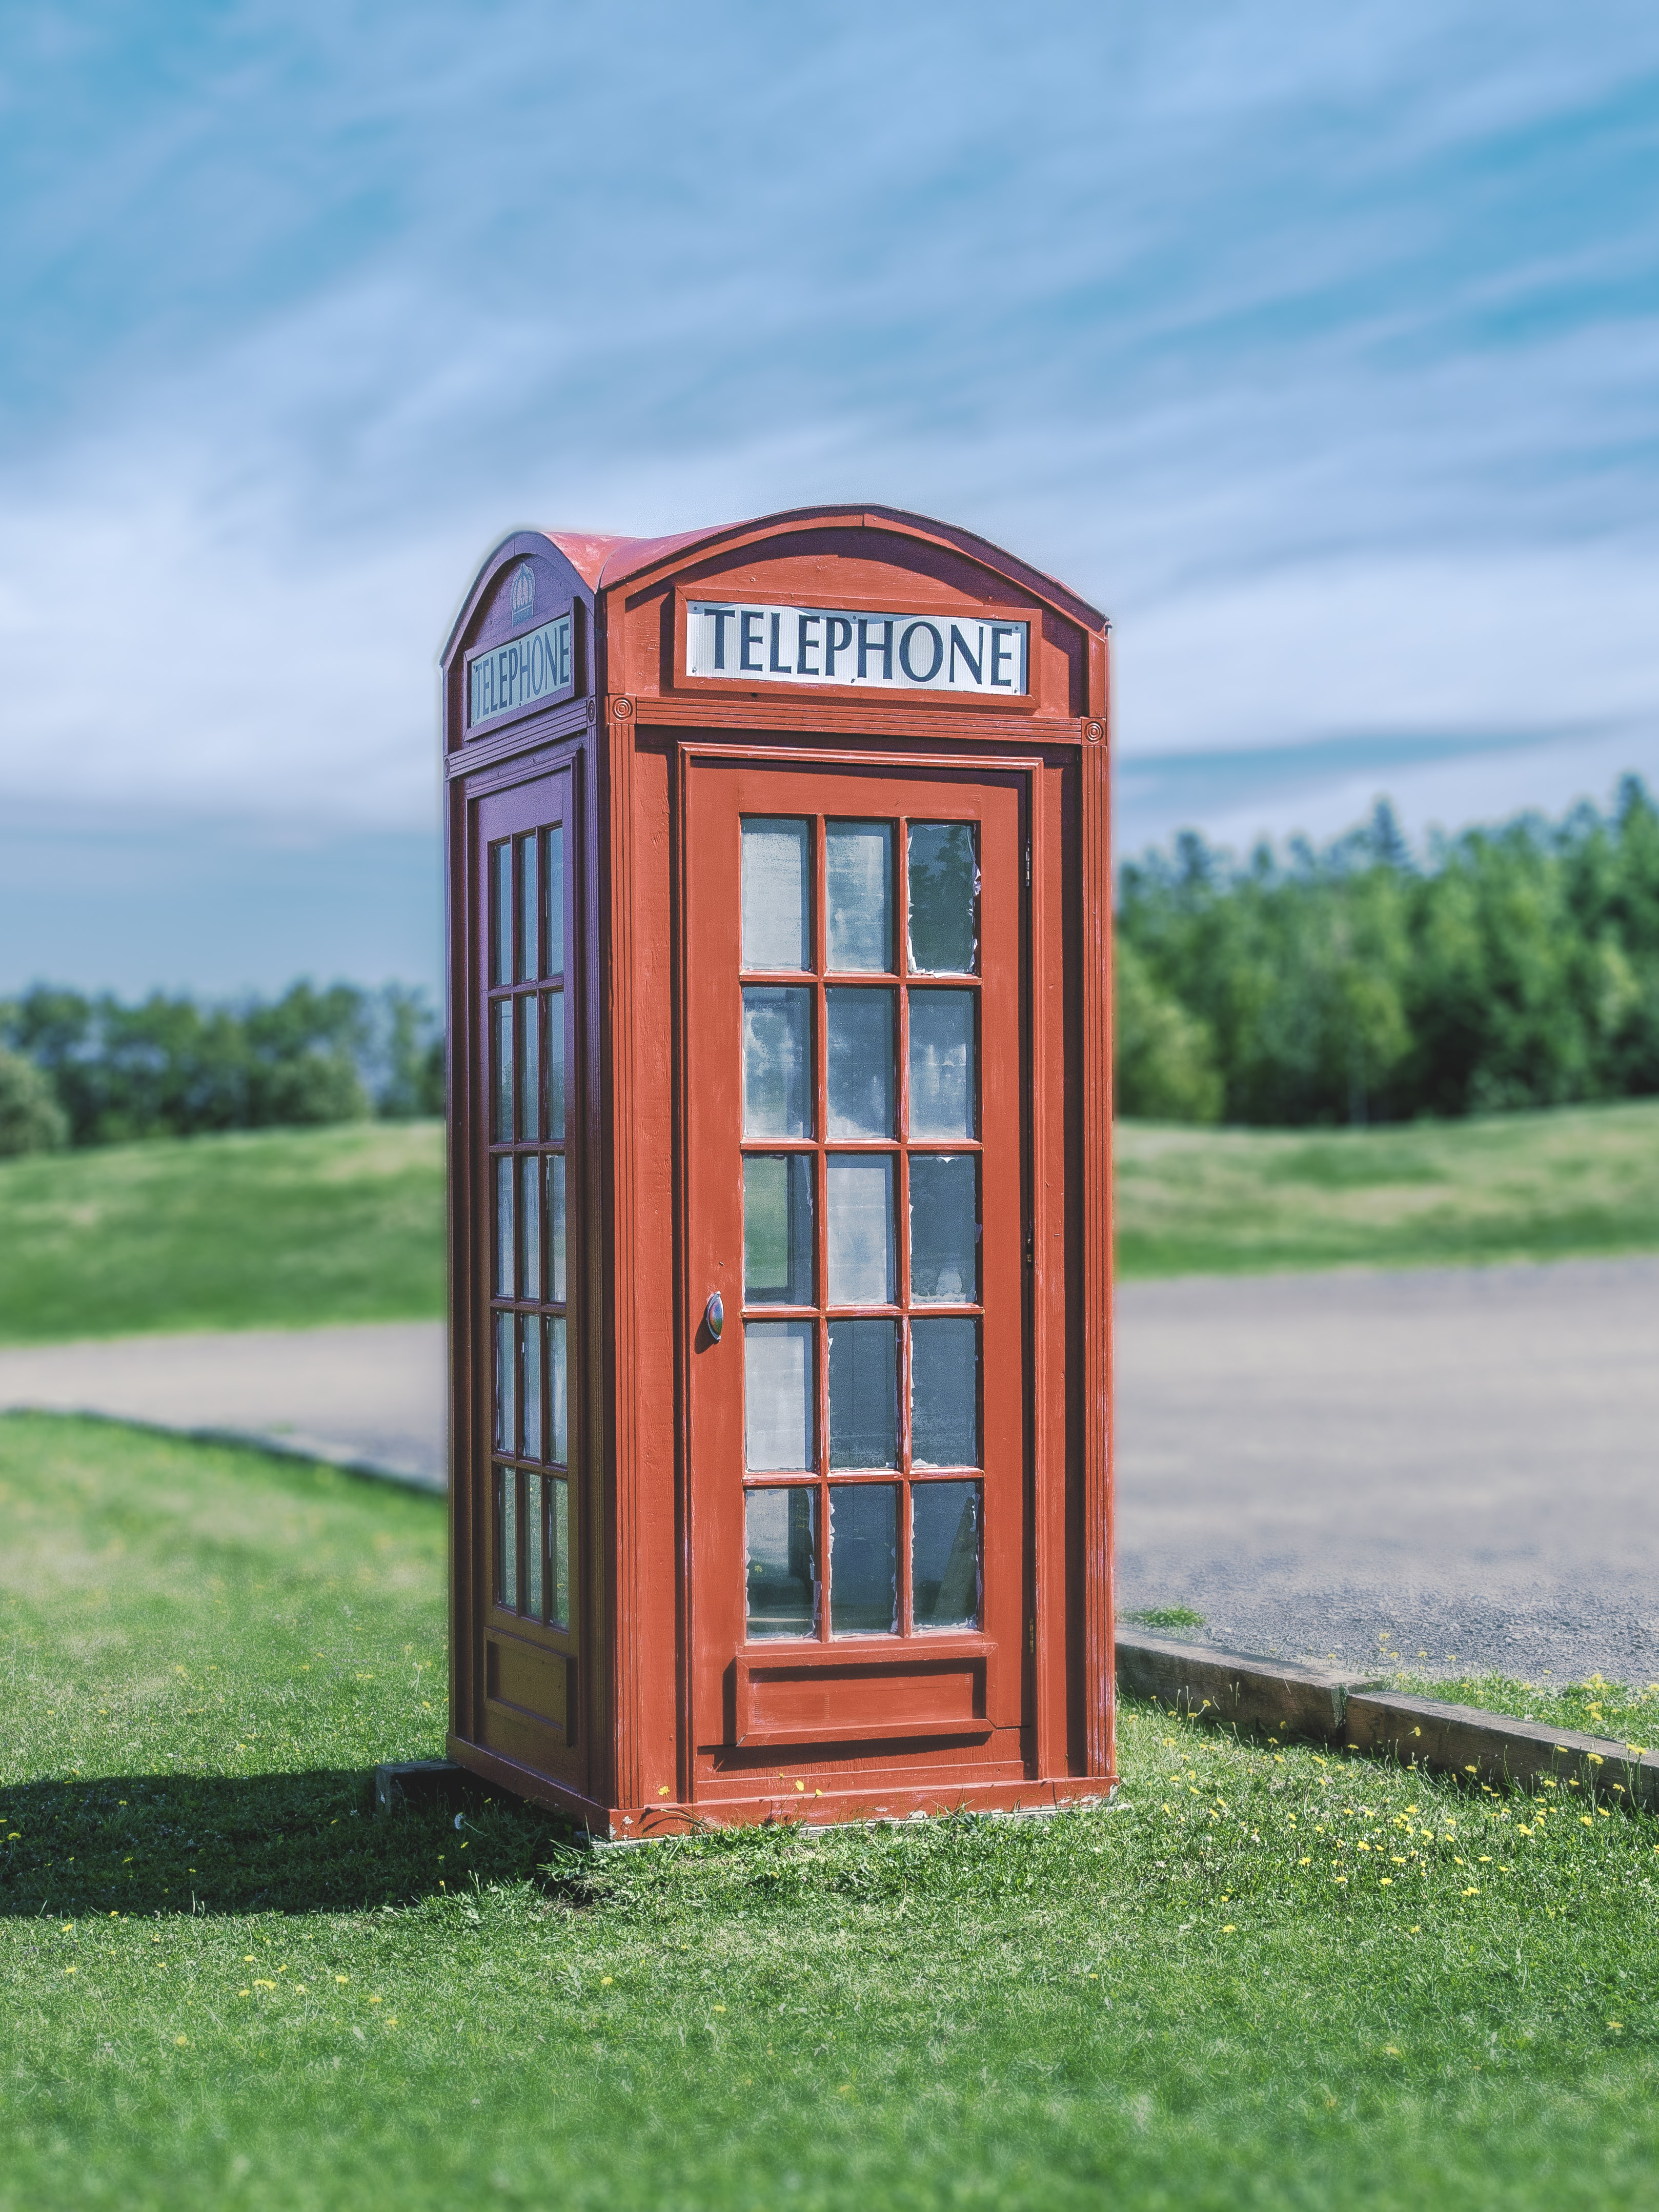 A red telephone booth sits on green grass against a blue sky